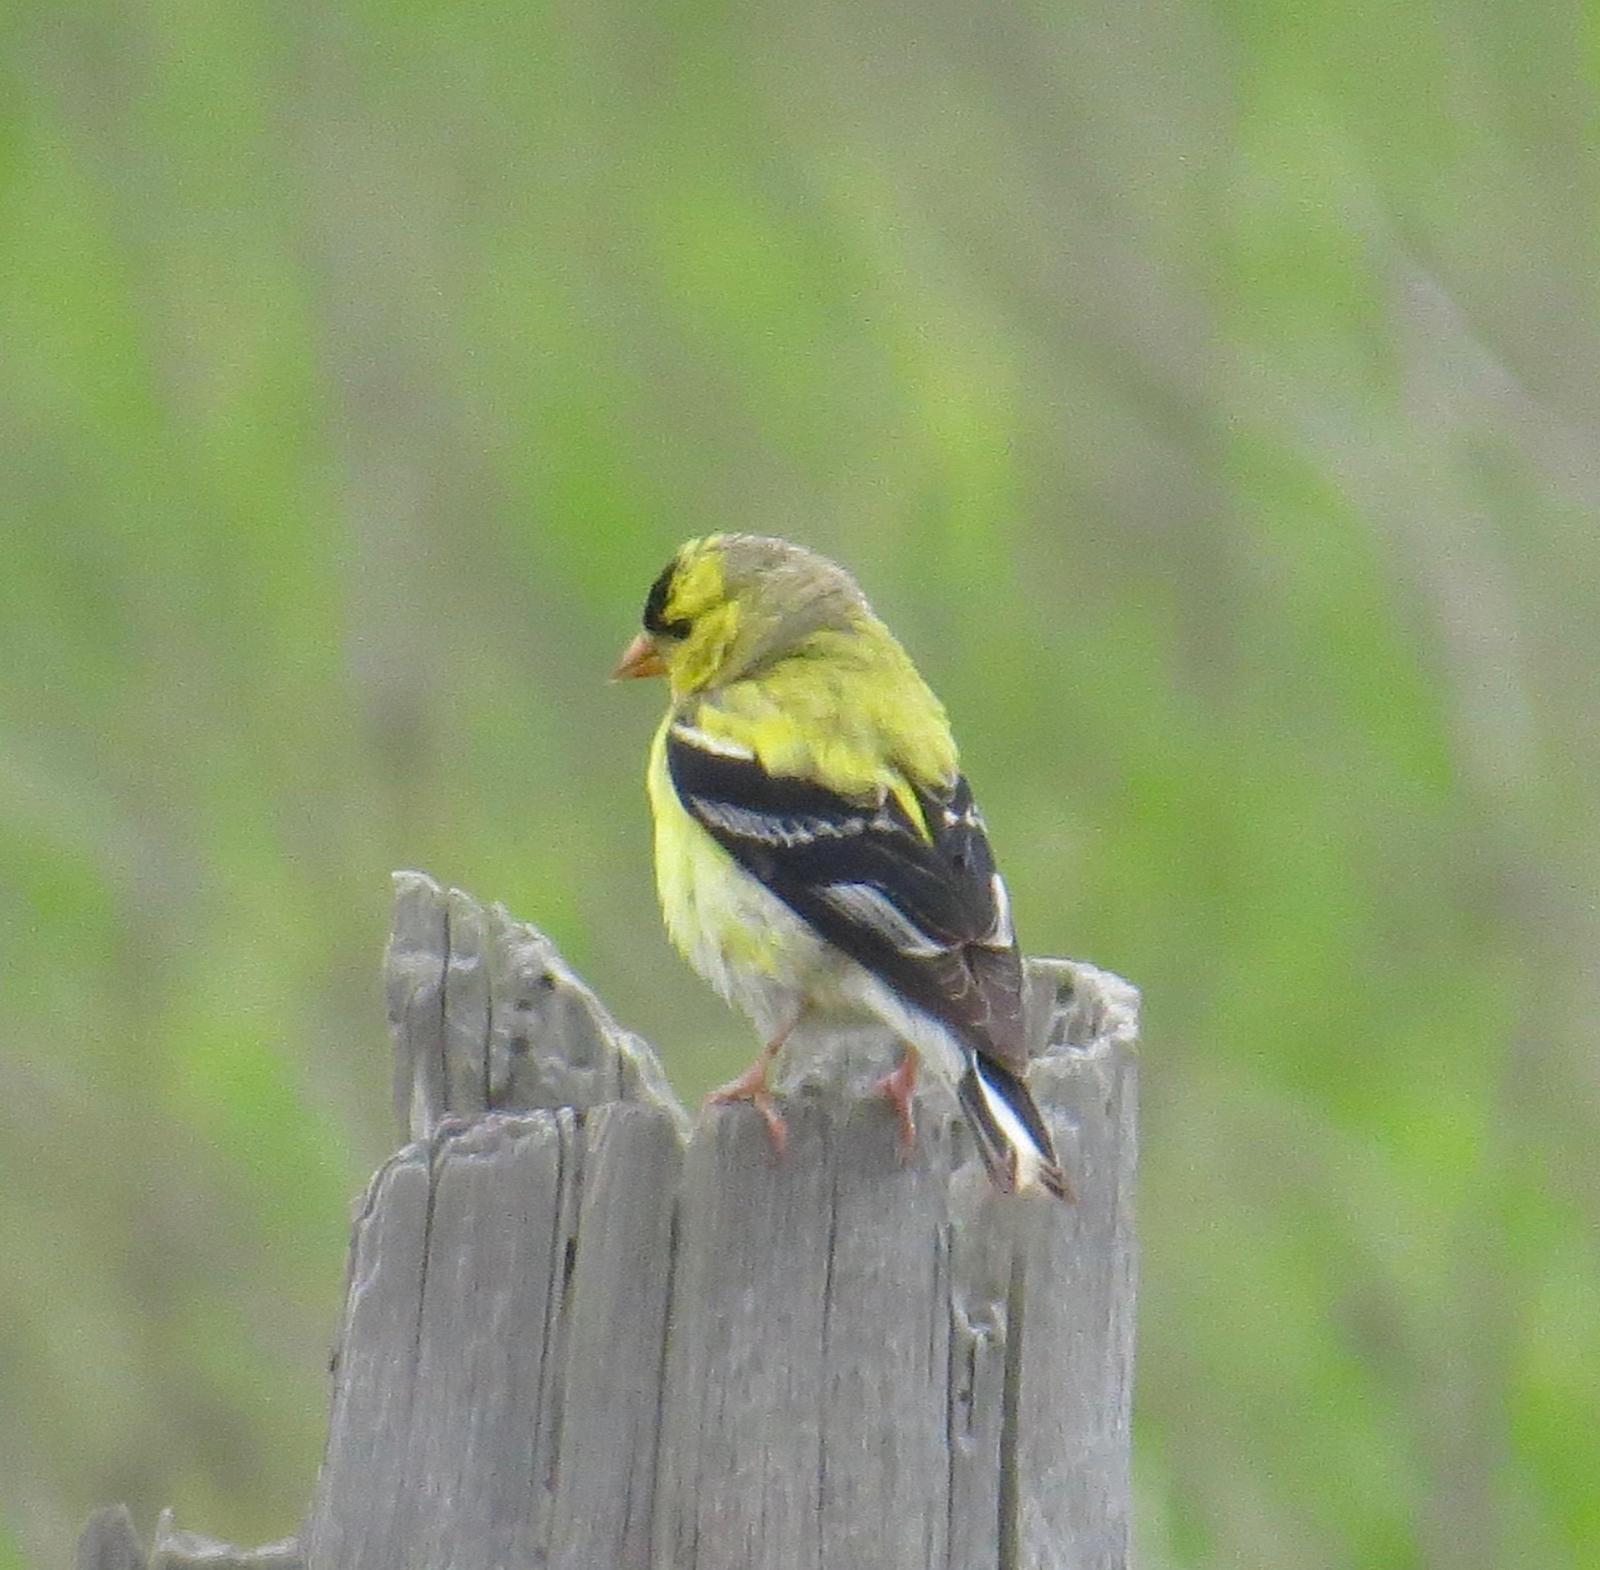 American Goldfinch Photo by Don Glasco